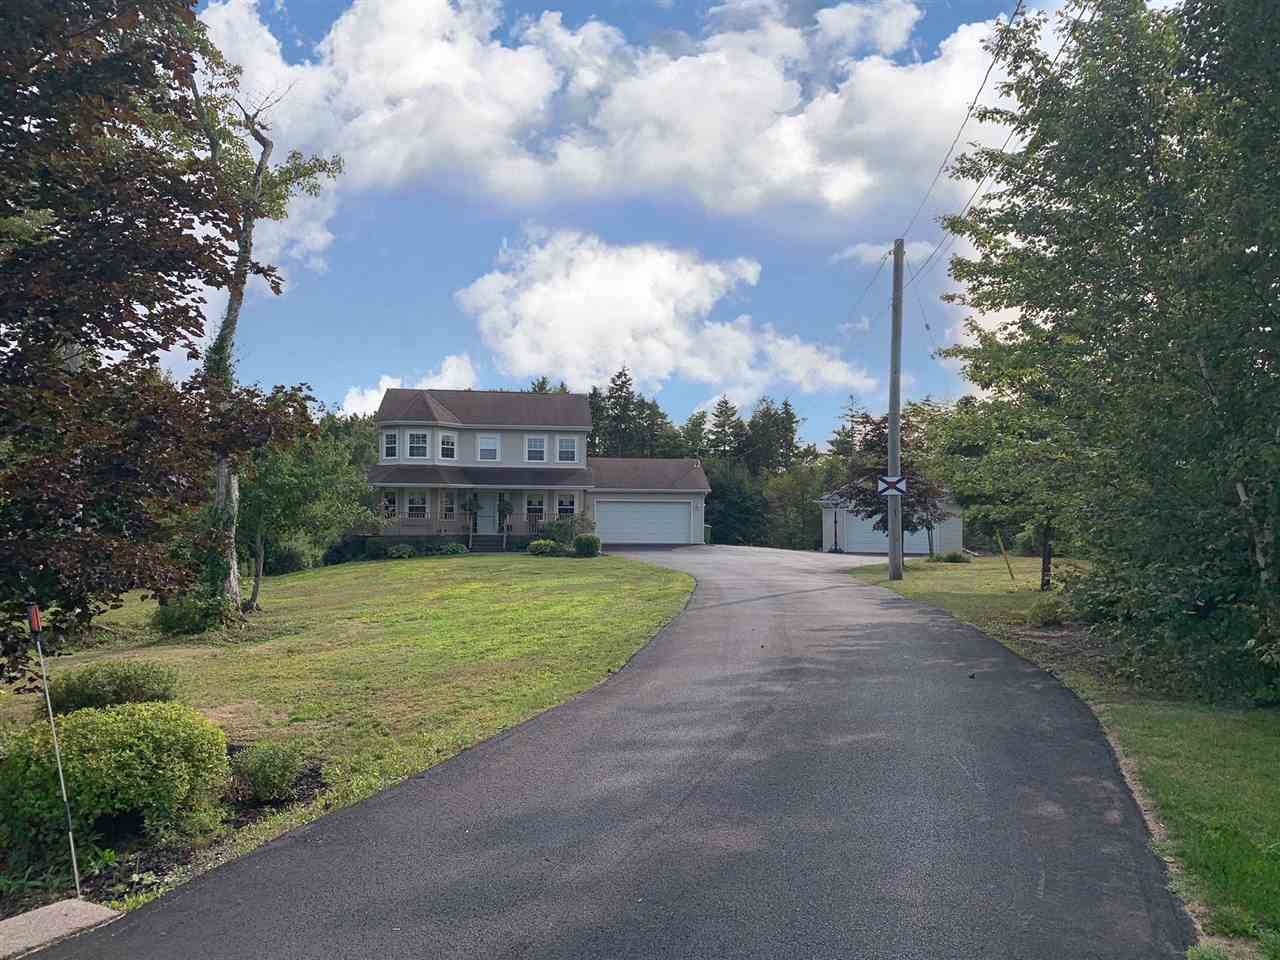 Main Photo: 94 Valerie Court in Windsor Junction: 30-Waverley, Fall River, Oakfield Residential for sale (Halifax-Dartmouth)  : MLS®# 202019264